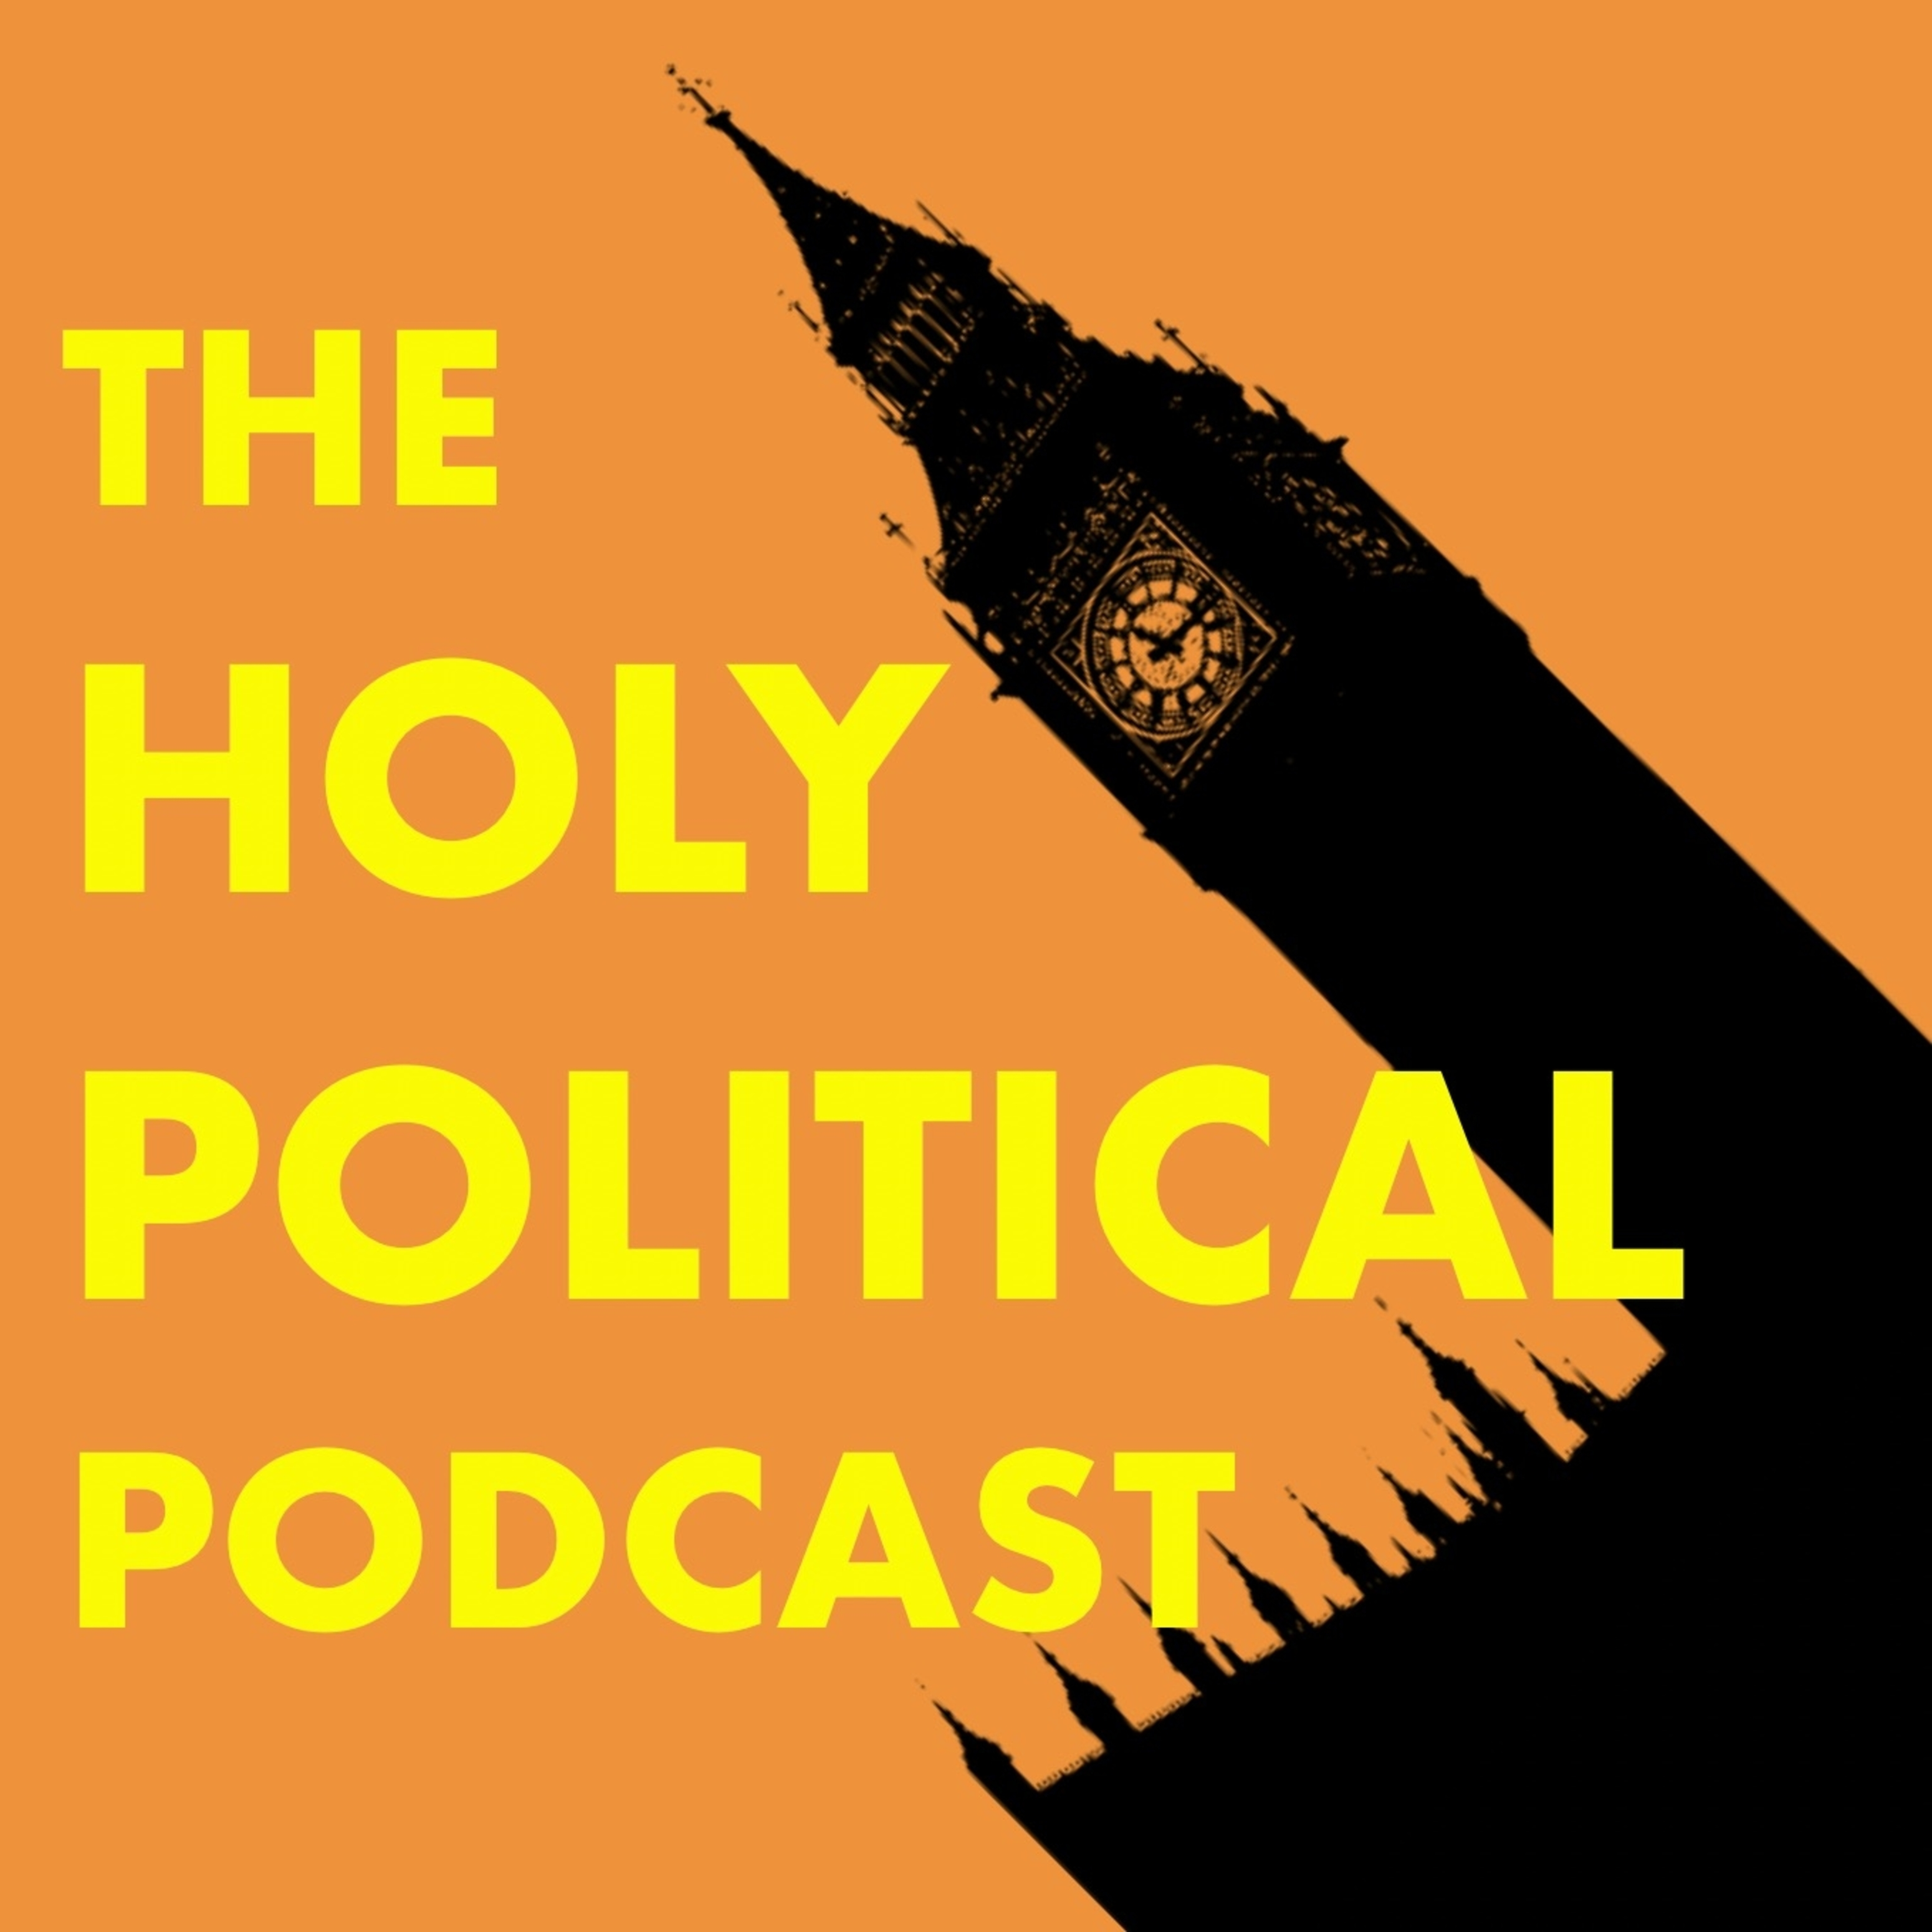 The Holy Political Podcast logo